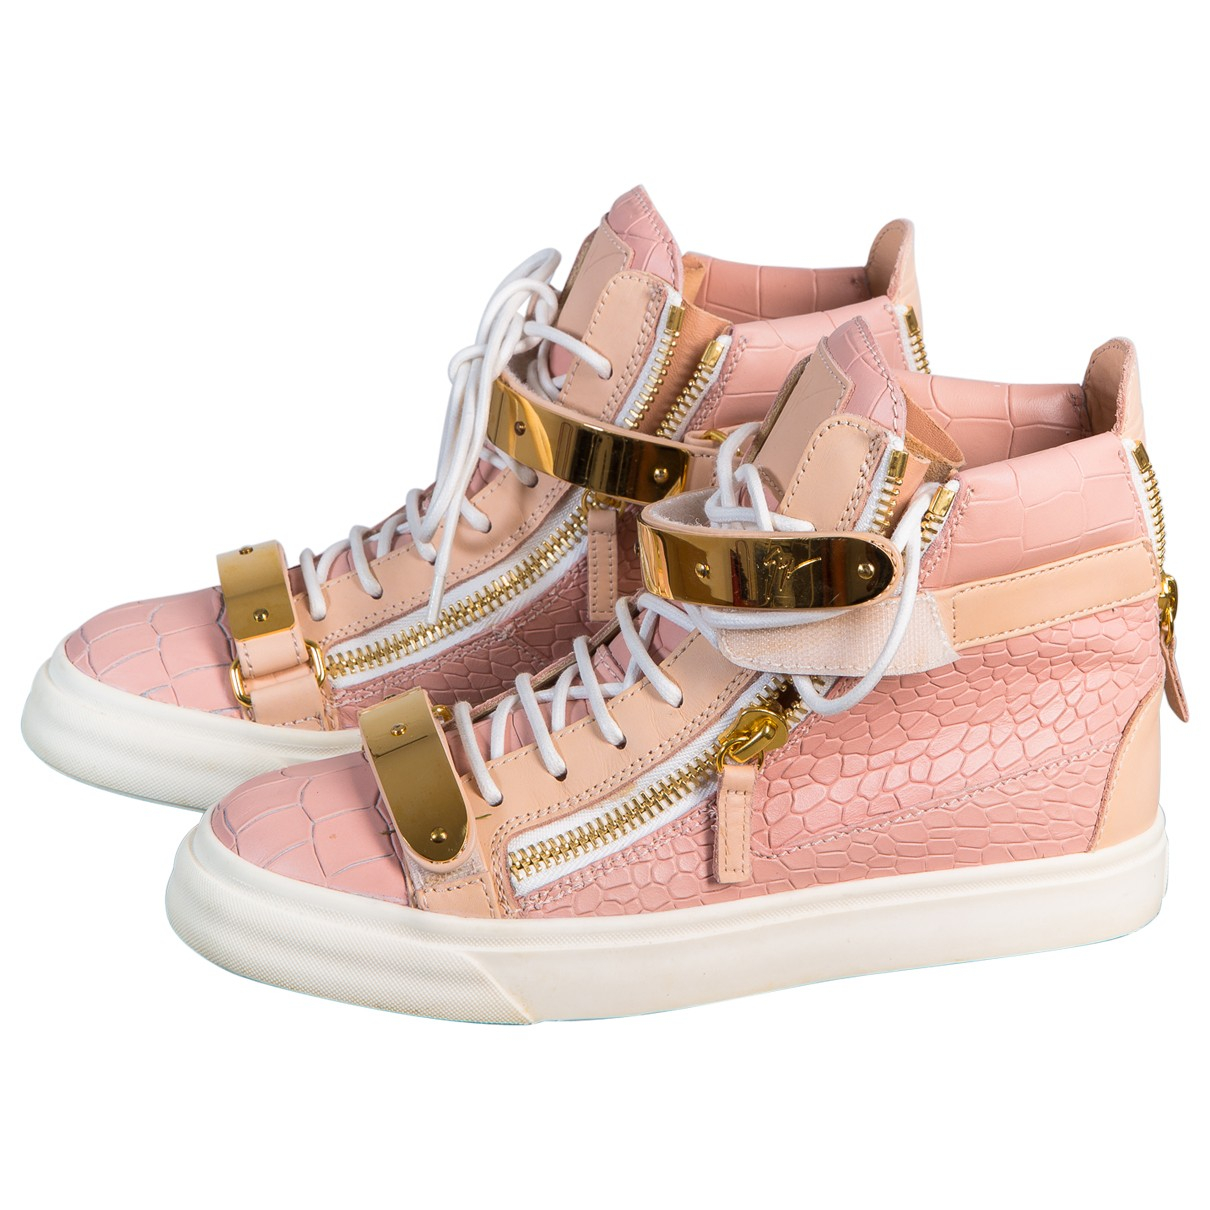 Giuseppe Zanotti N Pink Leather Trainers for Women 37.5 EU